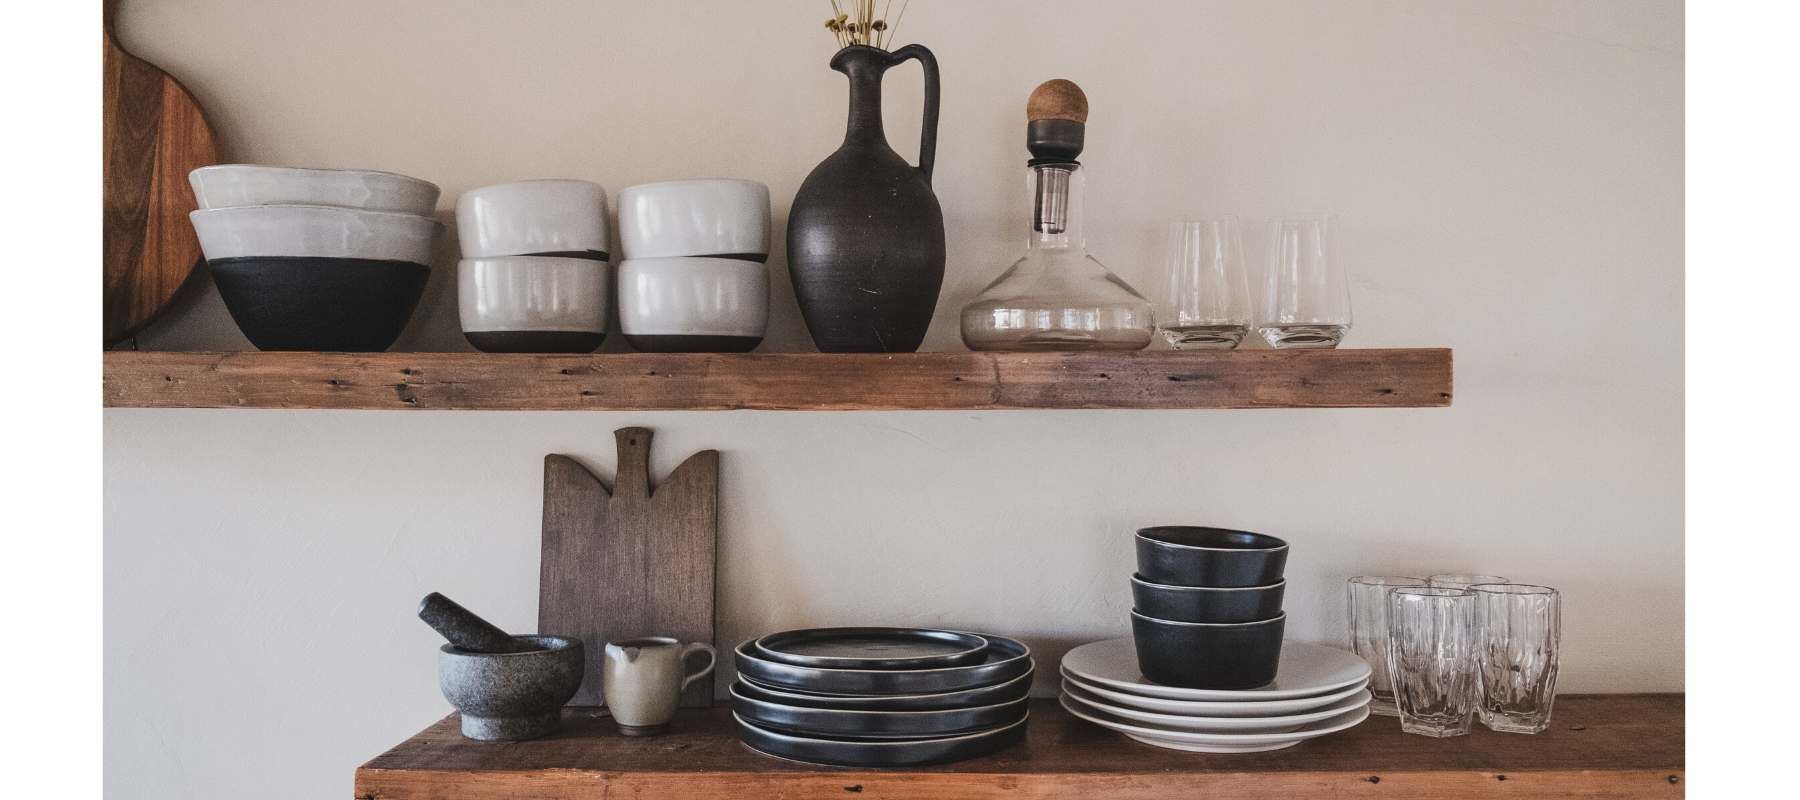 Rustic wooden kitchen shelves with pots and vases